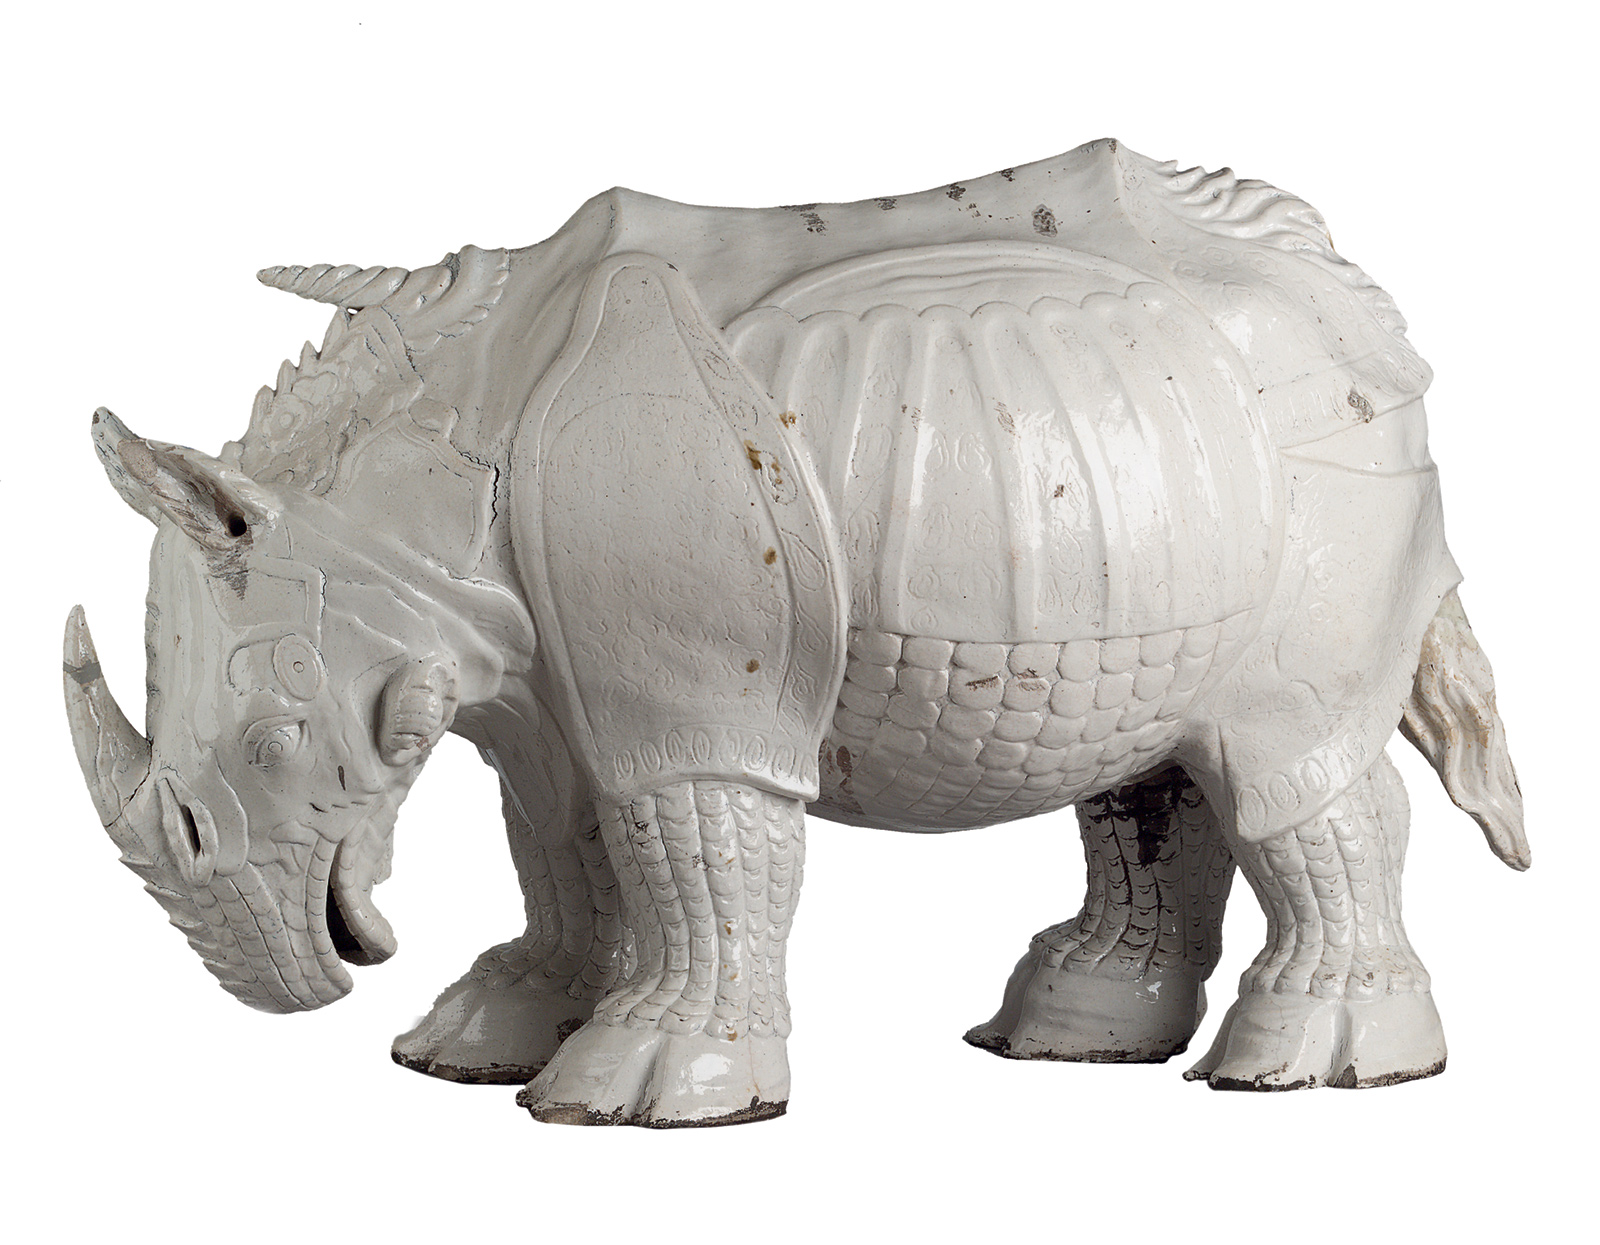 'Rhinoceros'; Meissen porcelain based on a sculpture by Johann Gottlieb Kirchner, 1730; from Neil MacGregor's Germany: Memories of a Nation